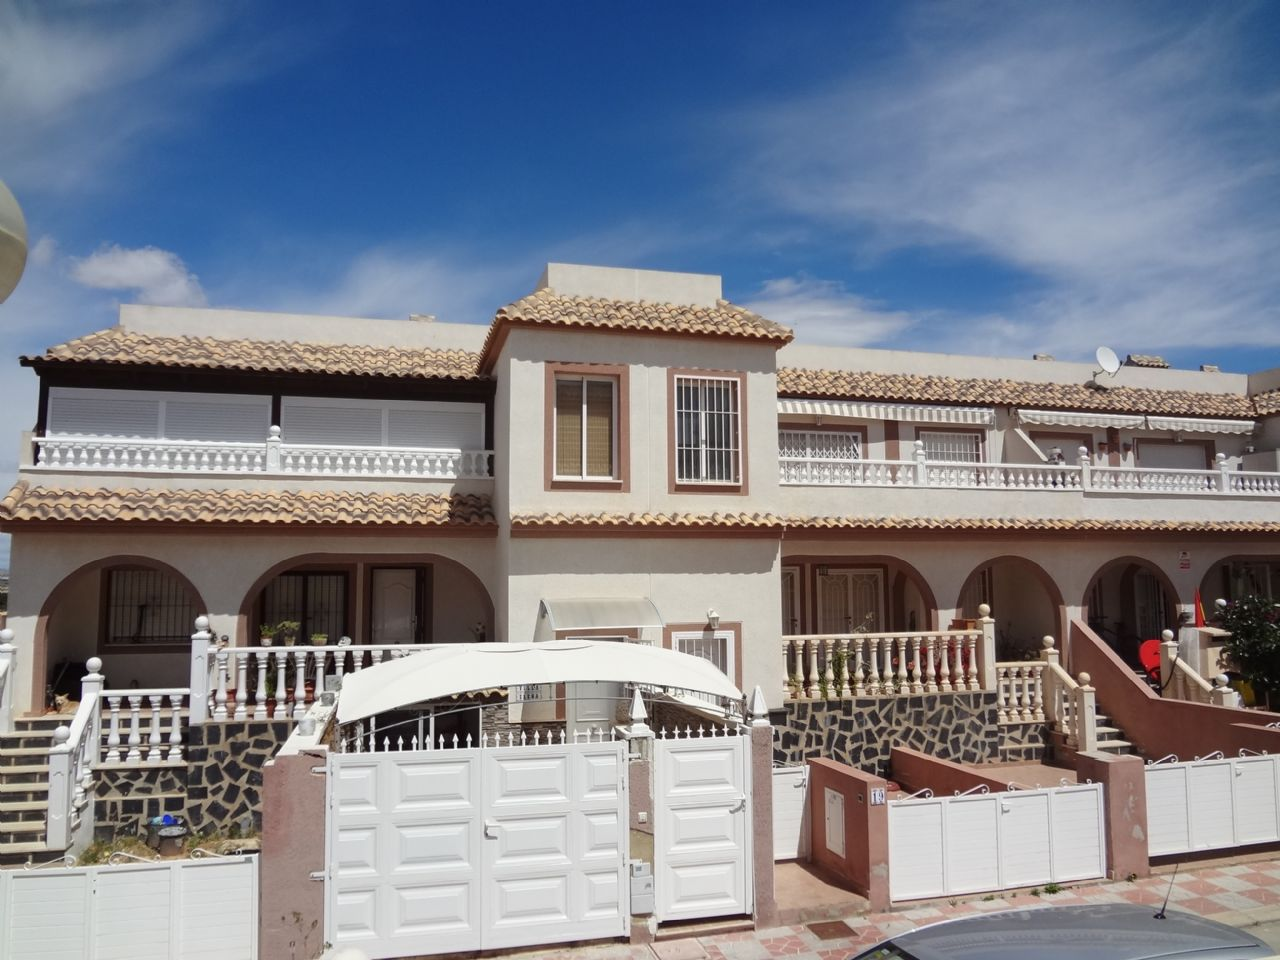 Apartment in Gran Alacant, Monte y Mar Zona Media Gran Alacant, for sale